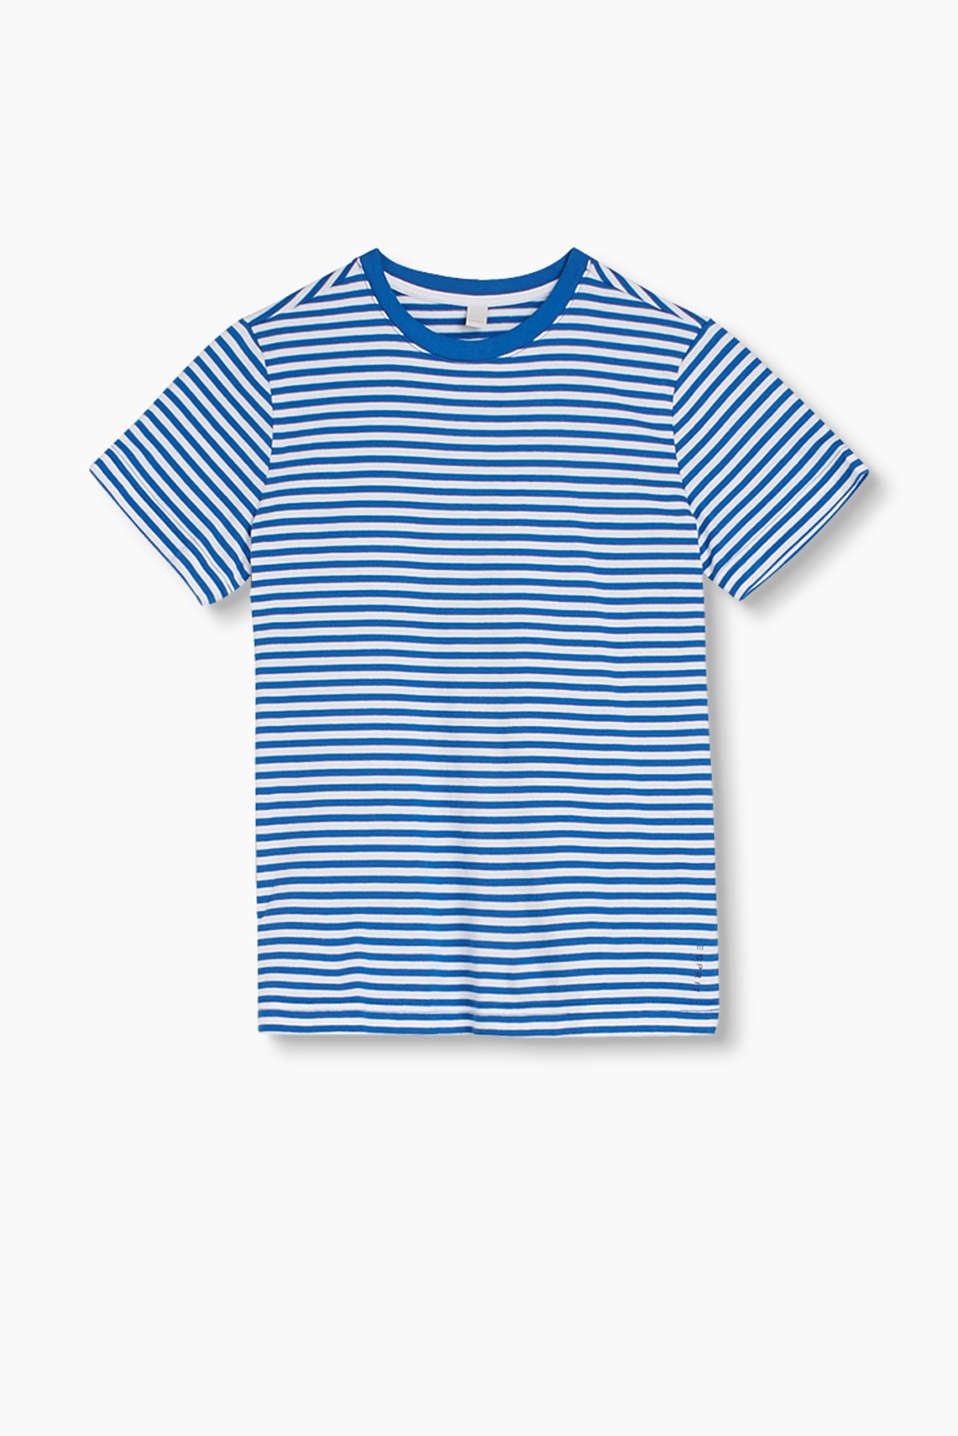 Basic, pure cotton T-shirt with a nautical stripe pattern